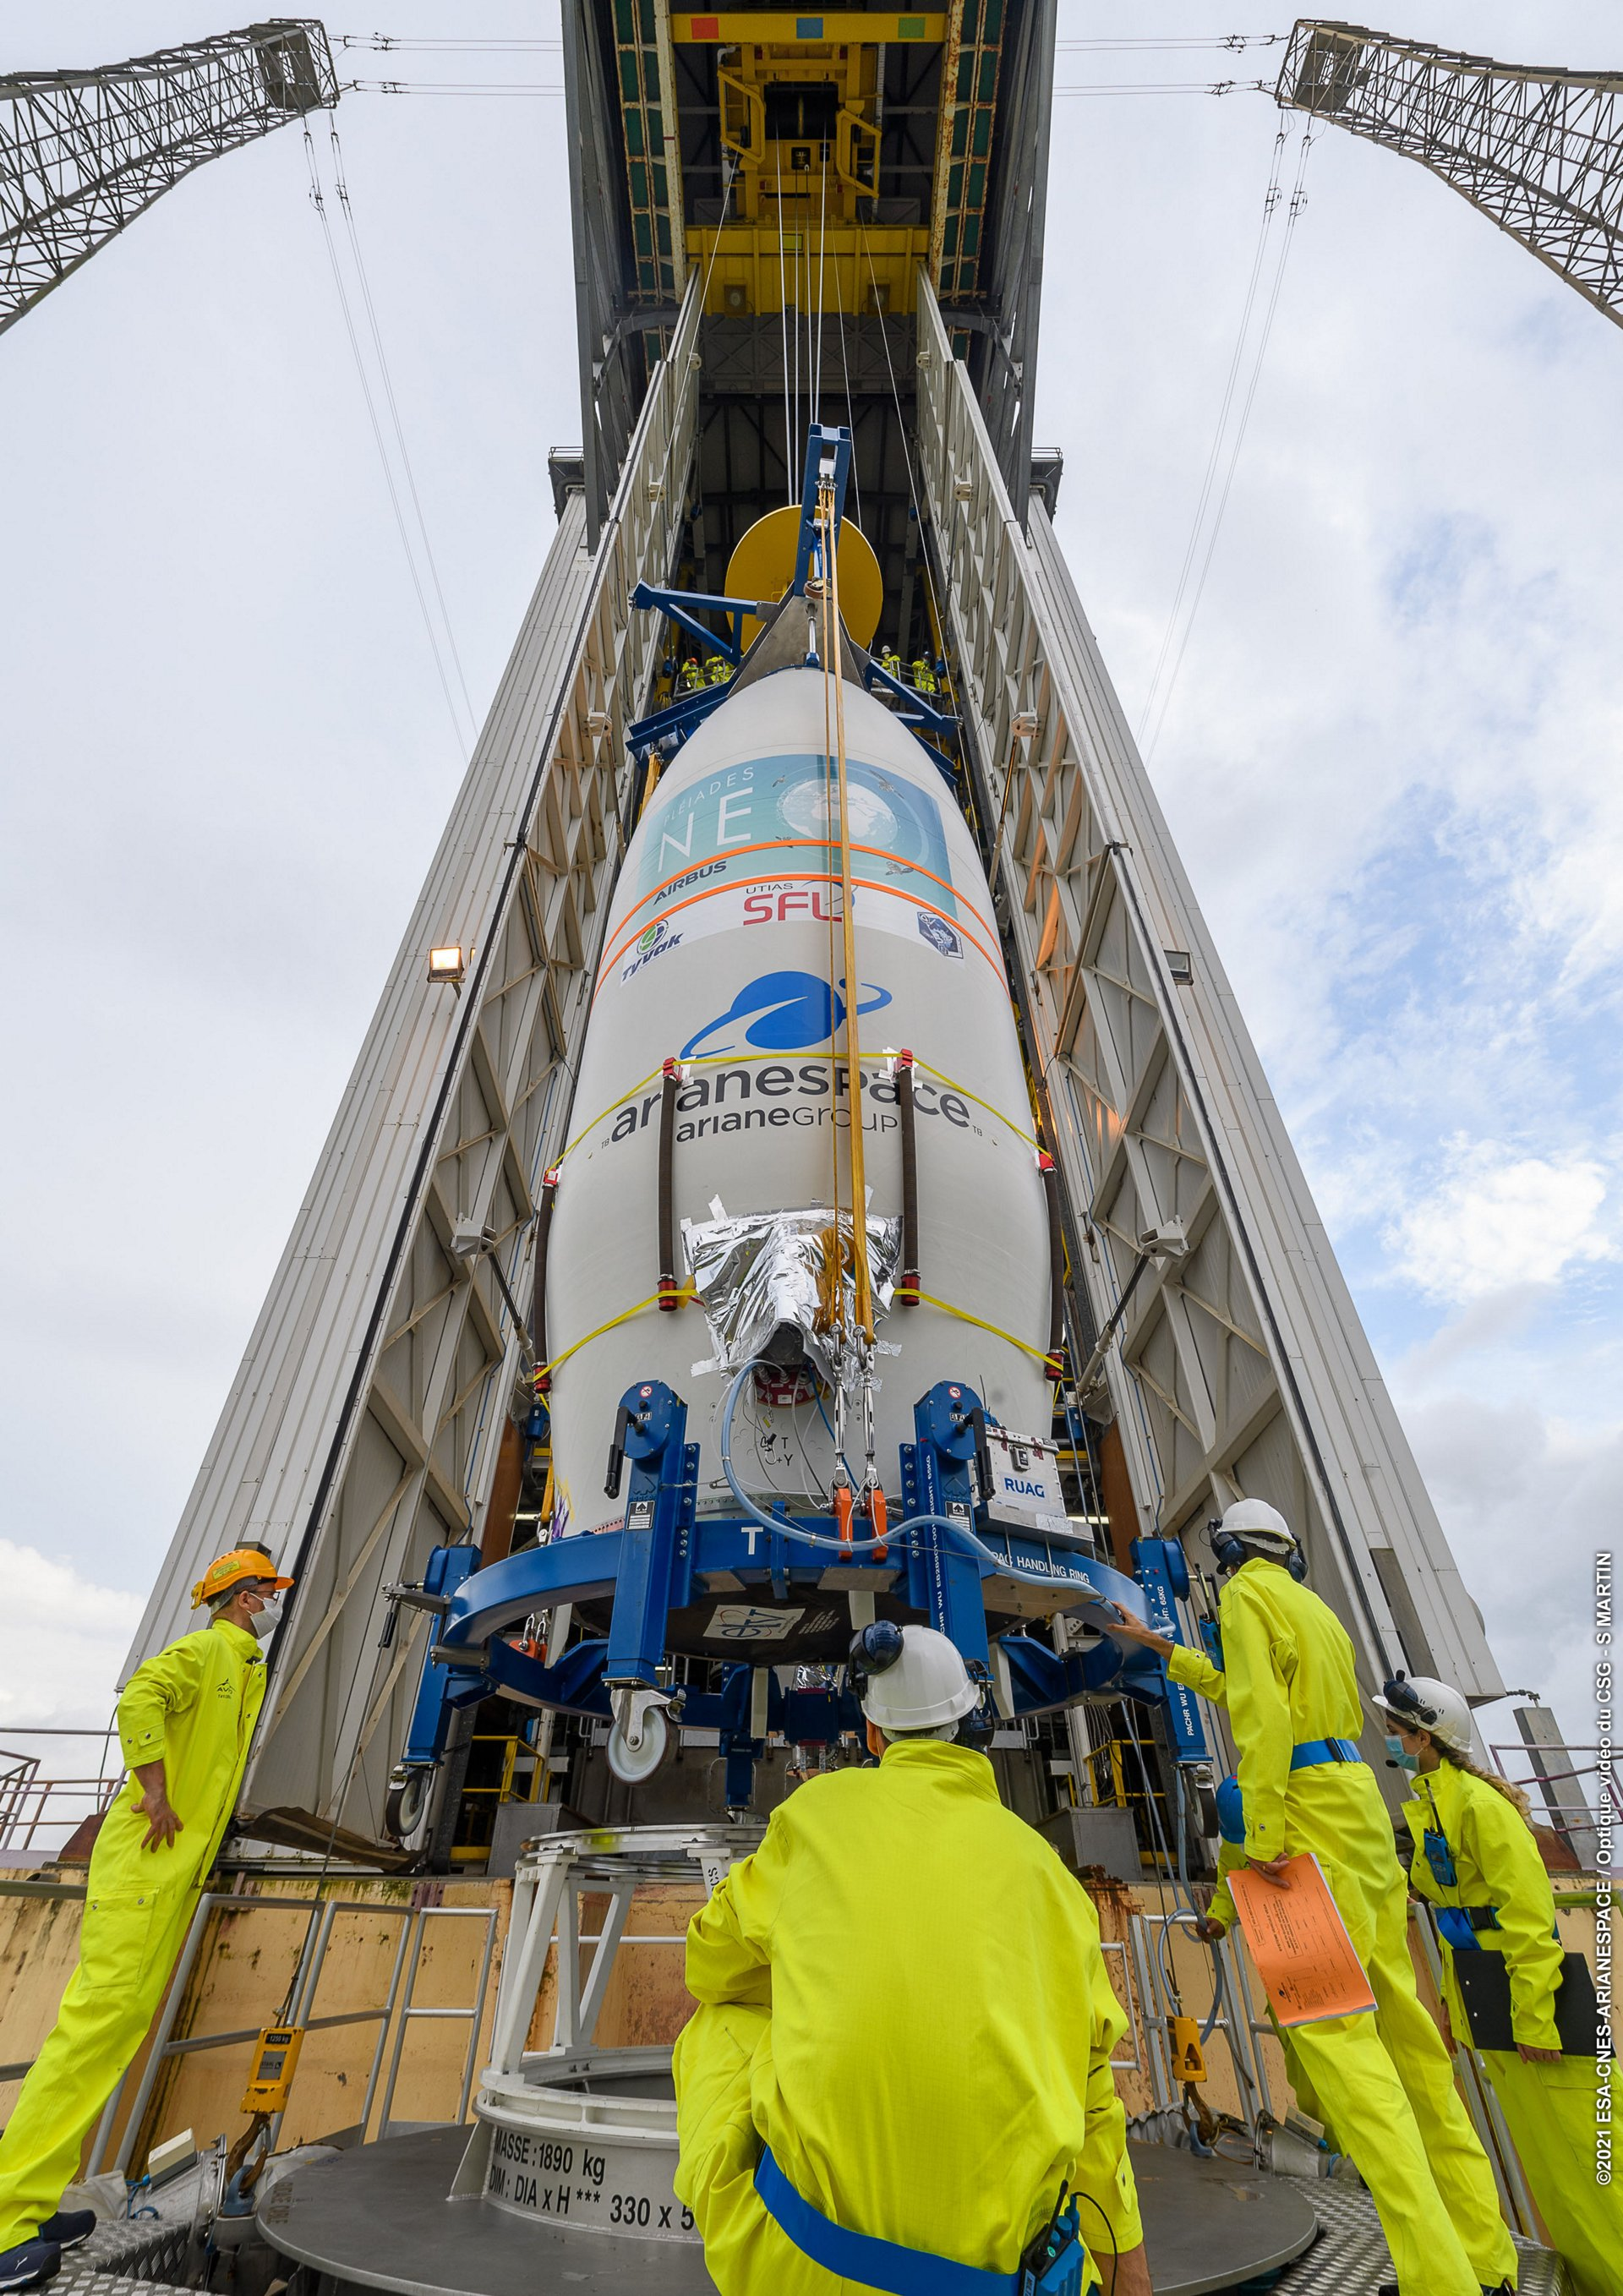 Pléiades Neo 3 getting ready for launch on Vega in Kourou.